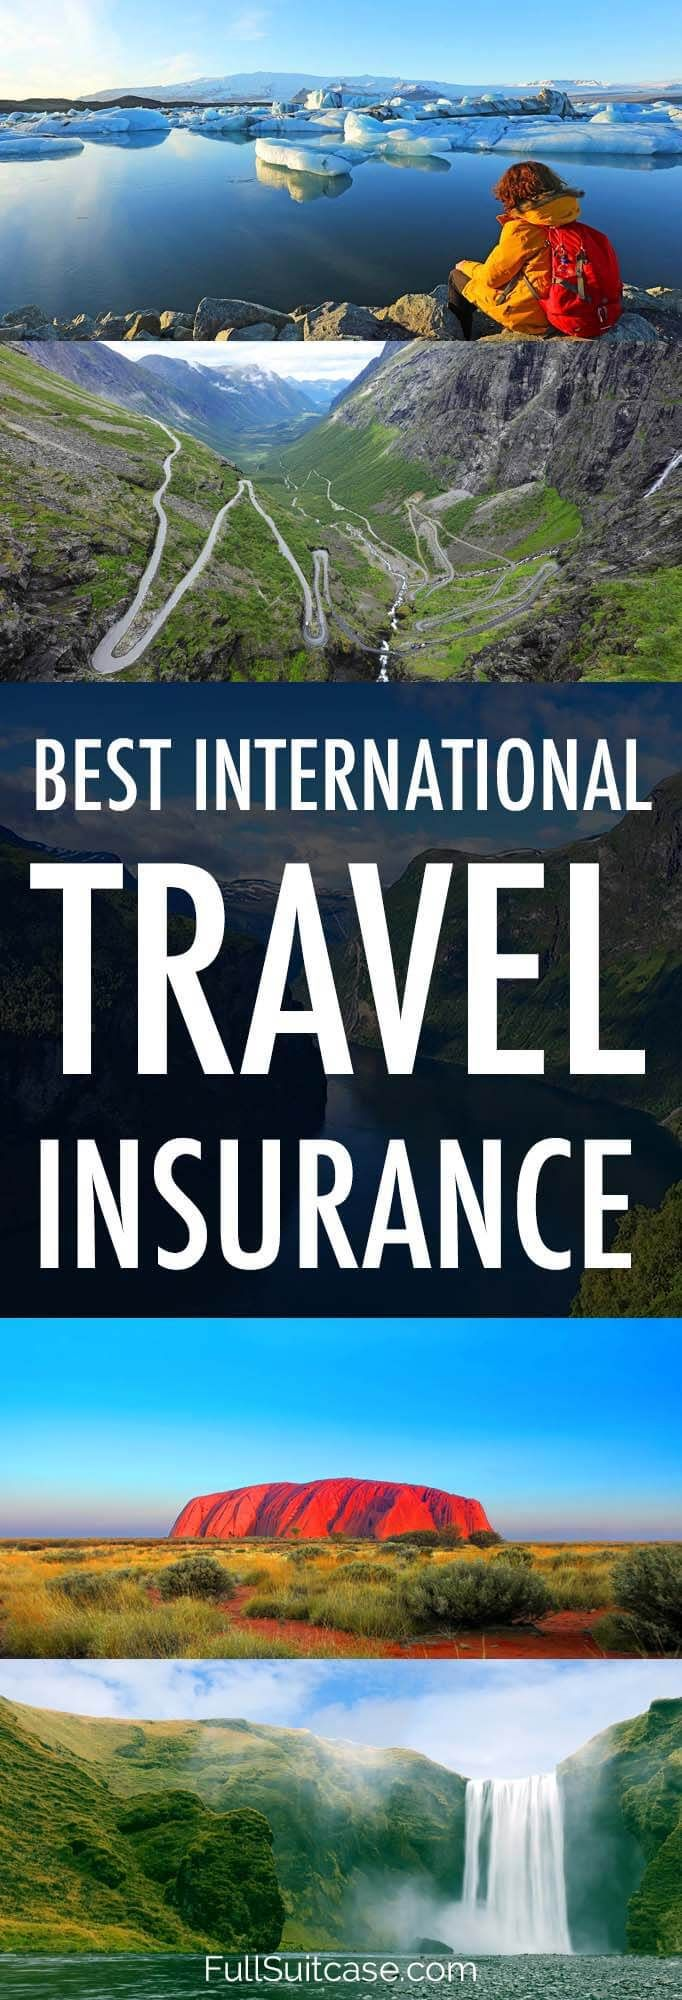 Top rated international travel insurance with worldwide coverage - featuring tips, reviews, and stories from real travelers #insurance #travel #travelinsurance